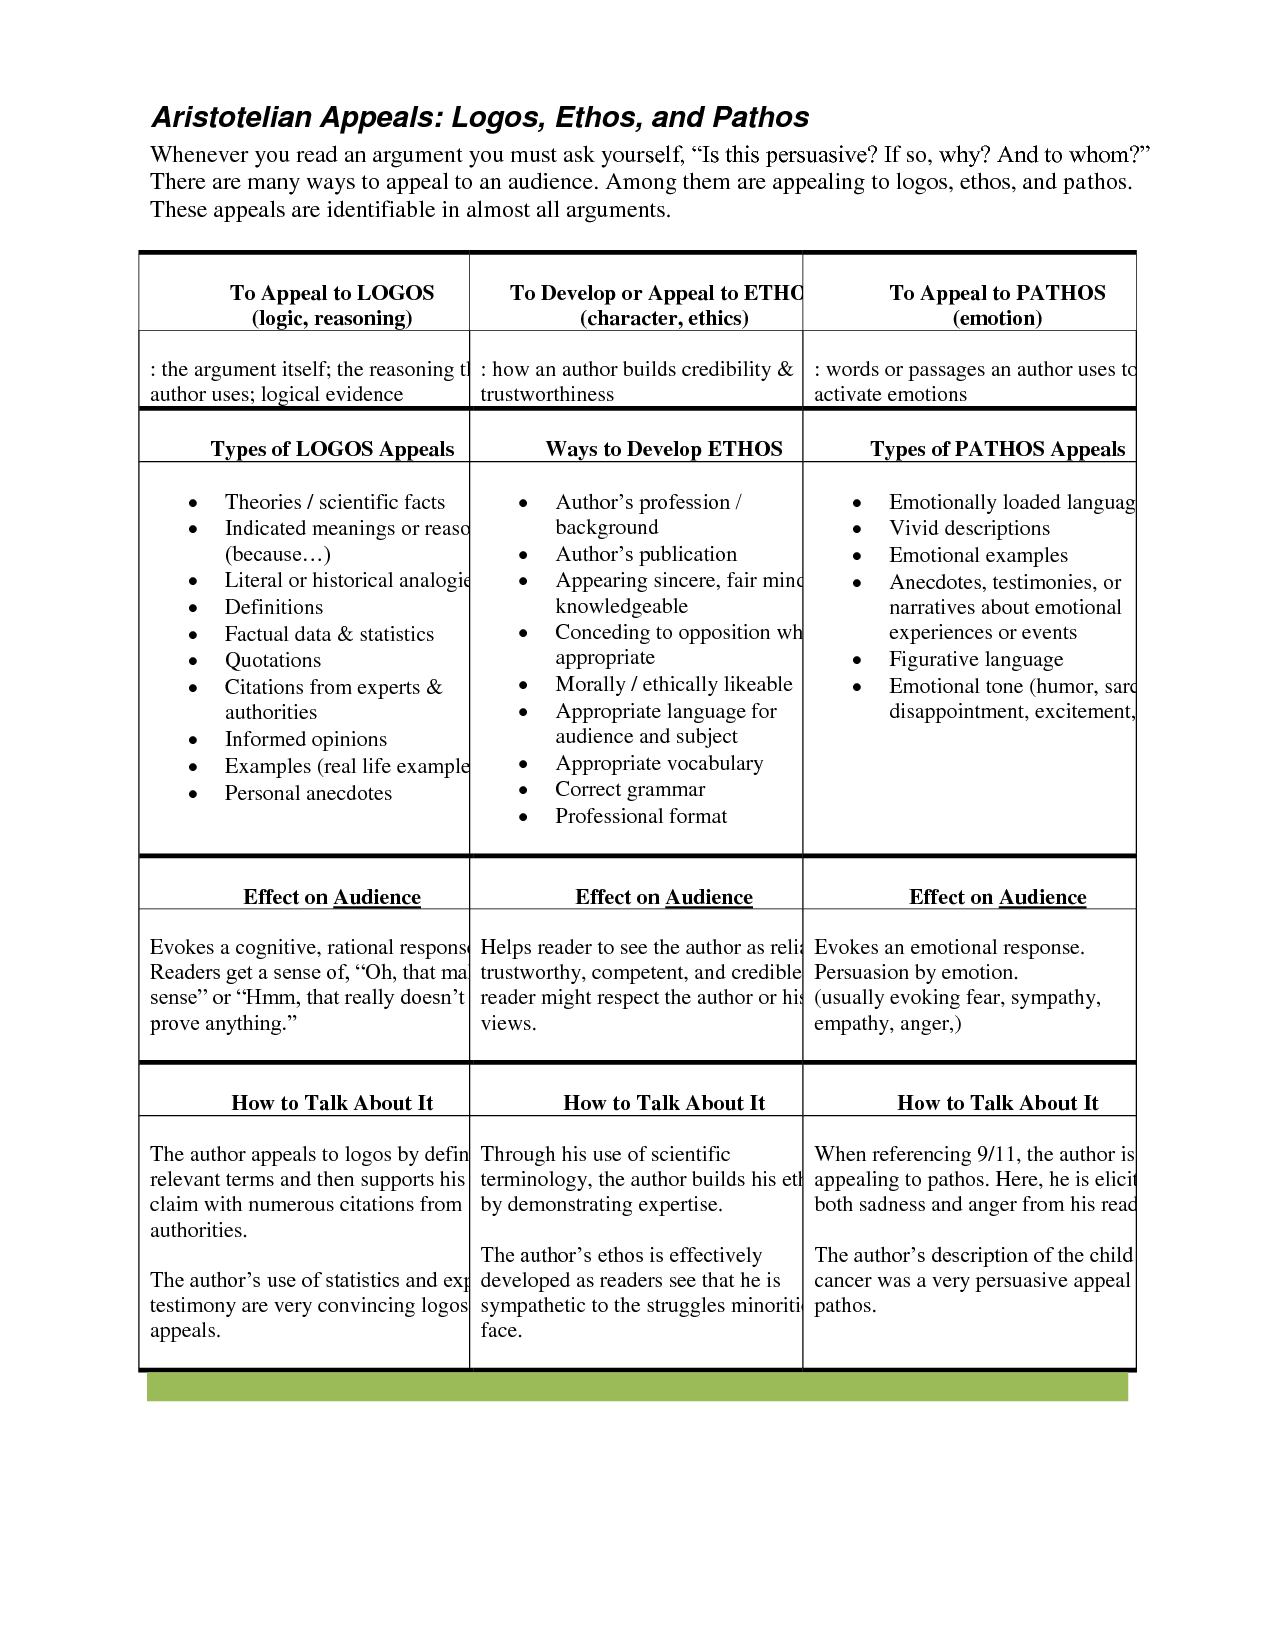 scope of work template | Ethos/Pathos/Logos | Pinterest | Worksheets ...